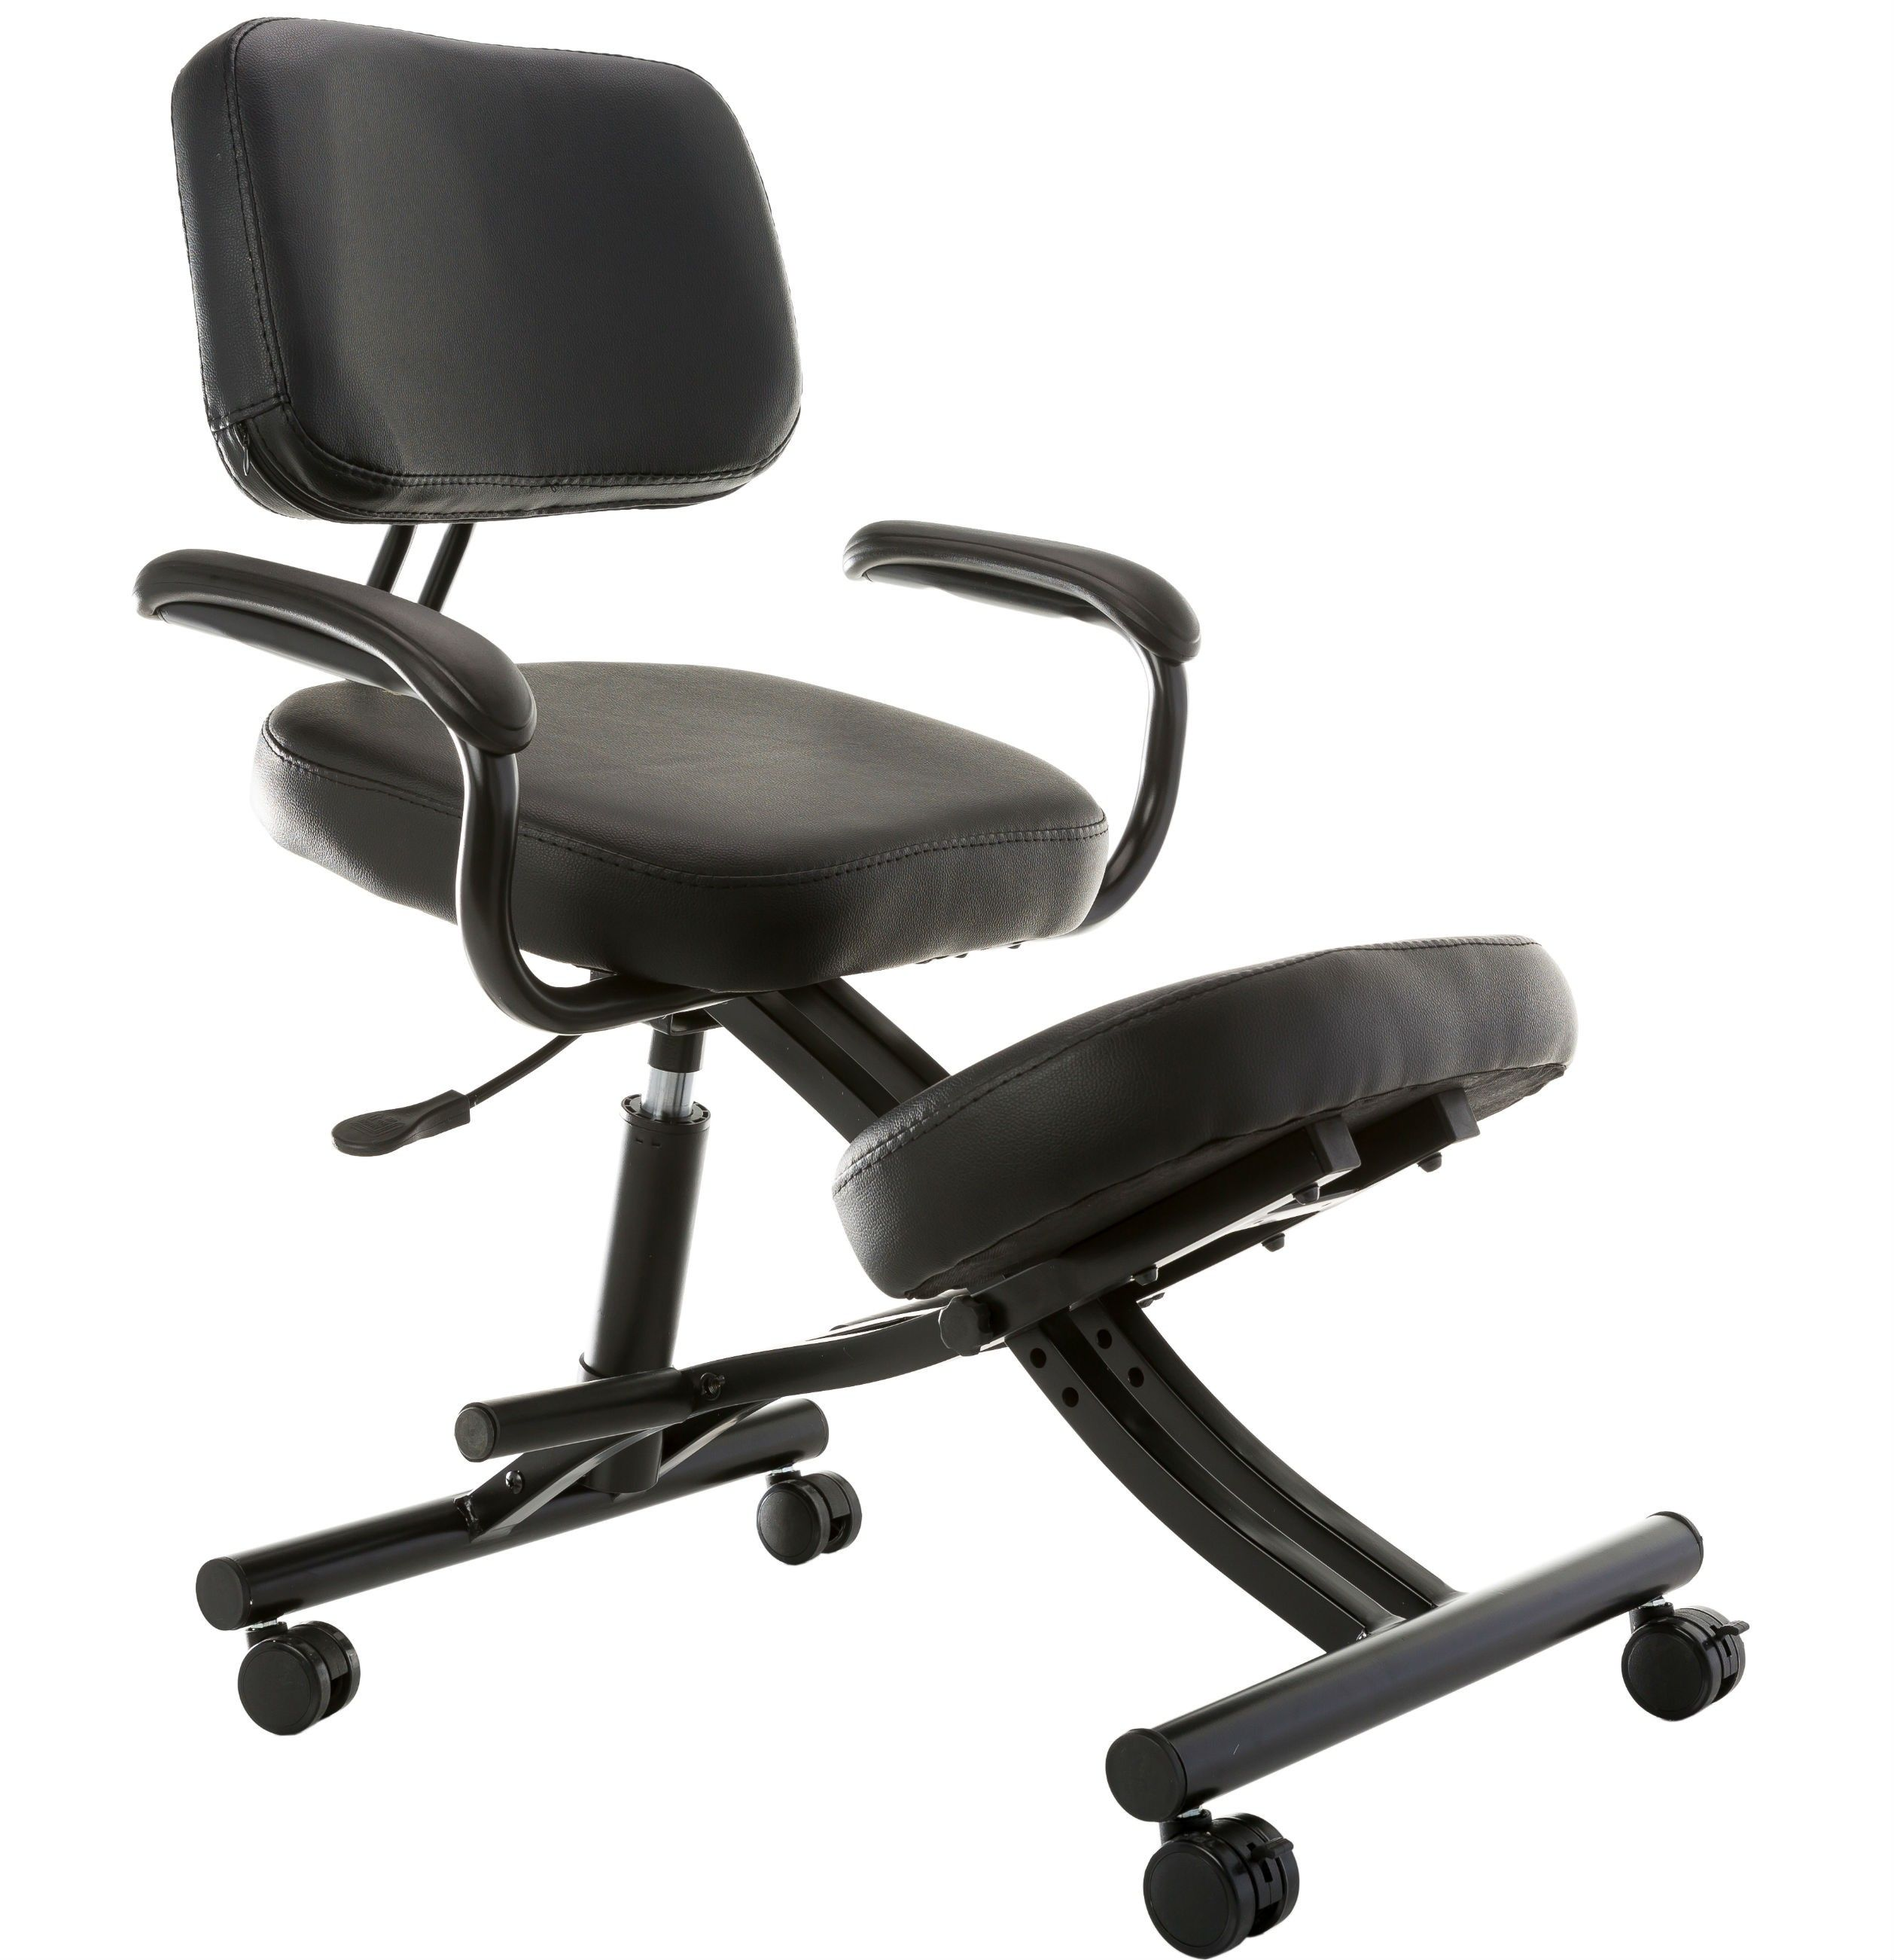 Schwedische Stuhl Ergonomische Büro Sterne Ergonomische Stuhl Kniete Orthopädische Bürostühle Ergonomische Ergonomic Kneeling Chair Office Chair Kneeling Chair